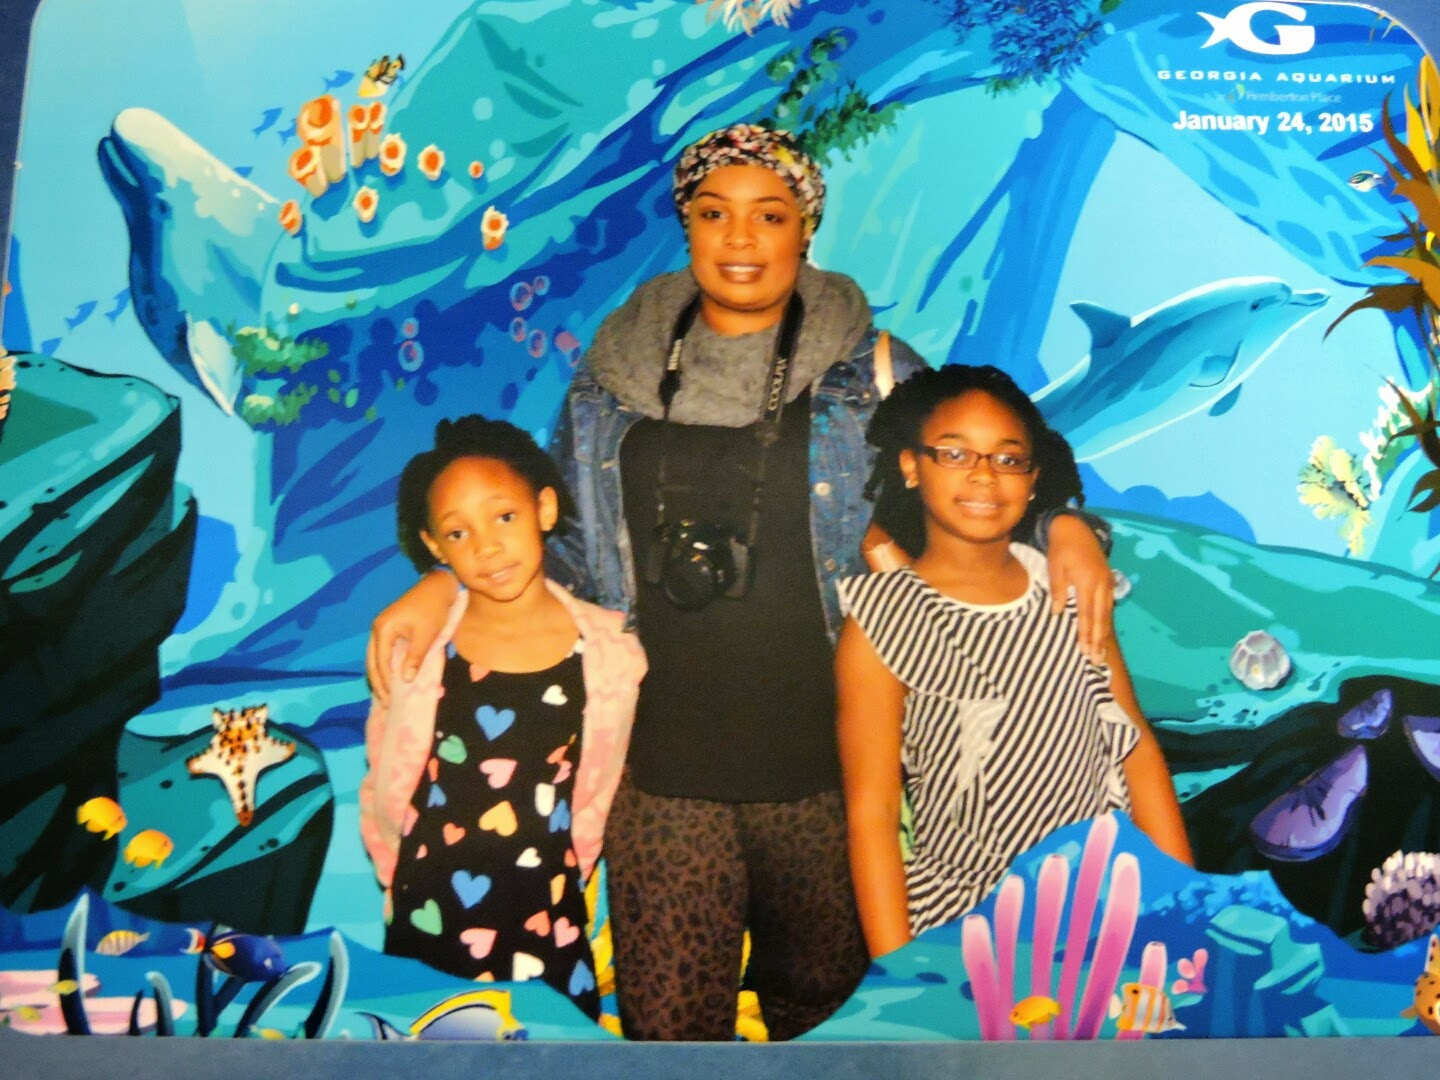 Georgia Aquarium Aquanaut Adventure: A Discovery Zone Review  #GAAquanautLaunch via www.productreviewmom.com